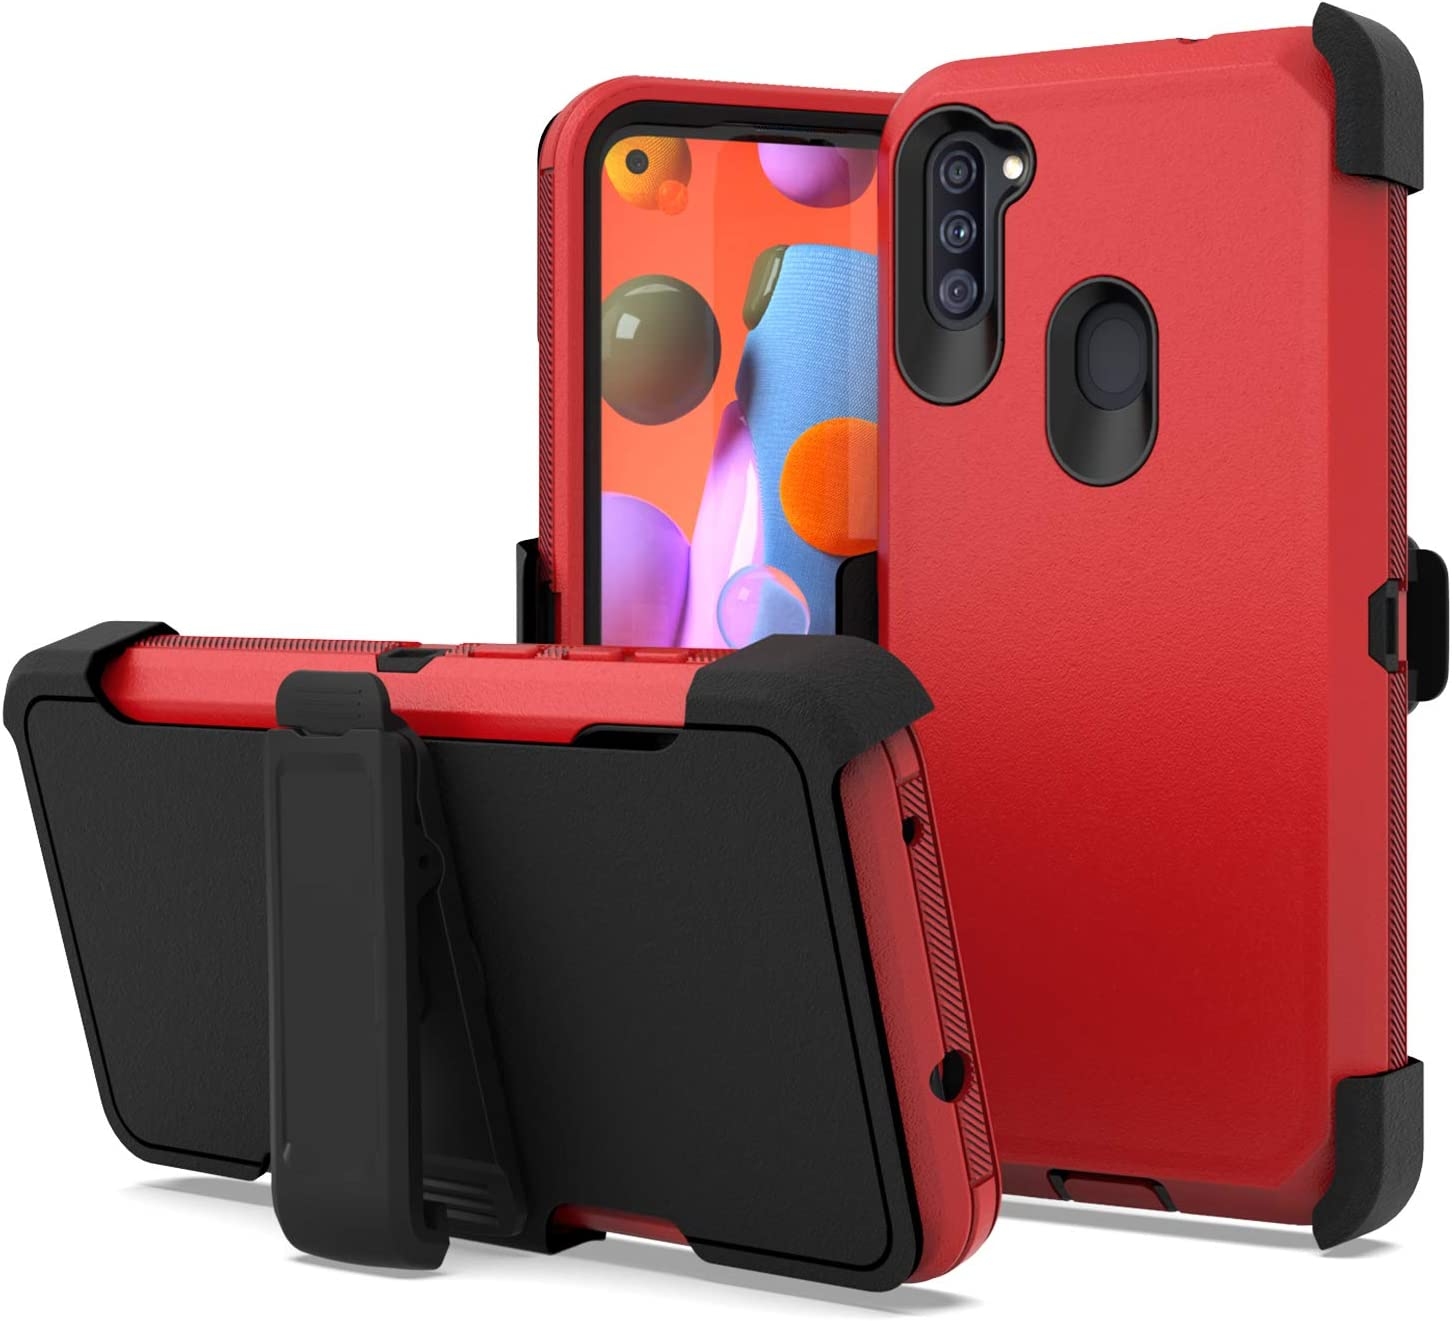 Fcclss Belt Clip Holster Cell Max 55% OFF Phone for Galaxy A11 Ranking integrated 1st place Case Samsung